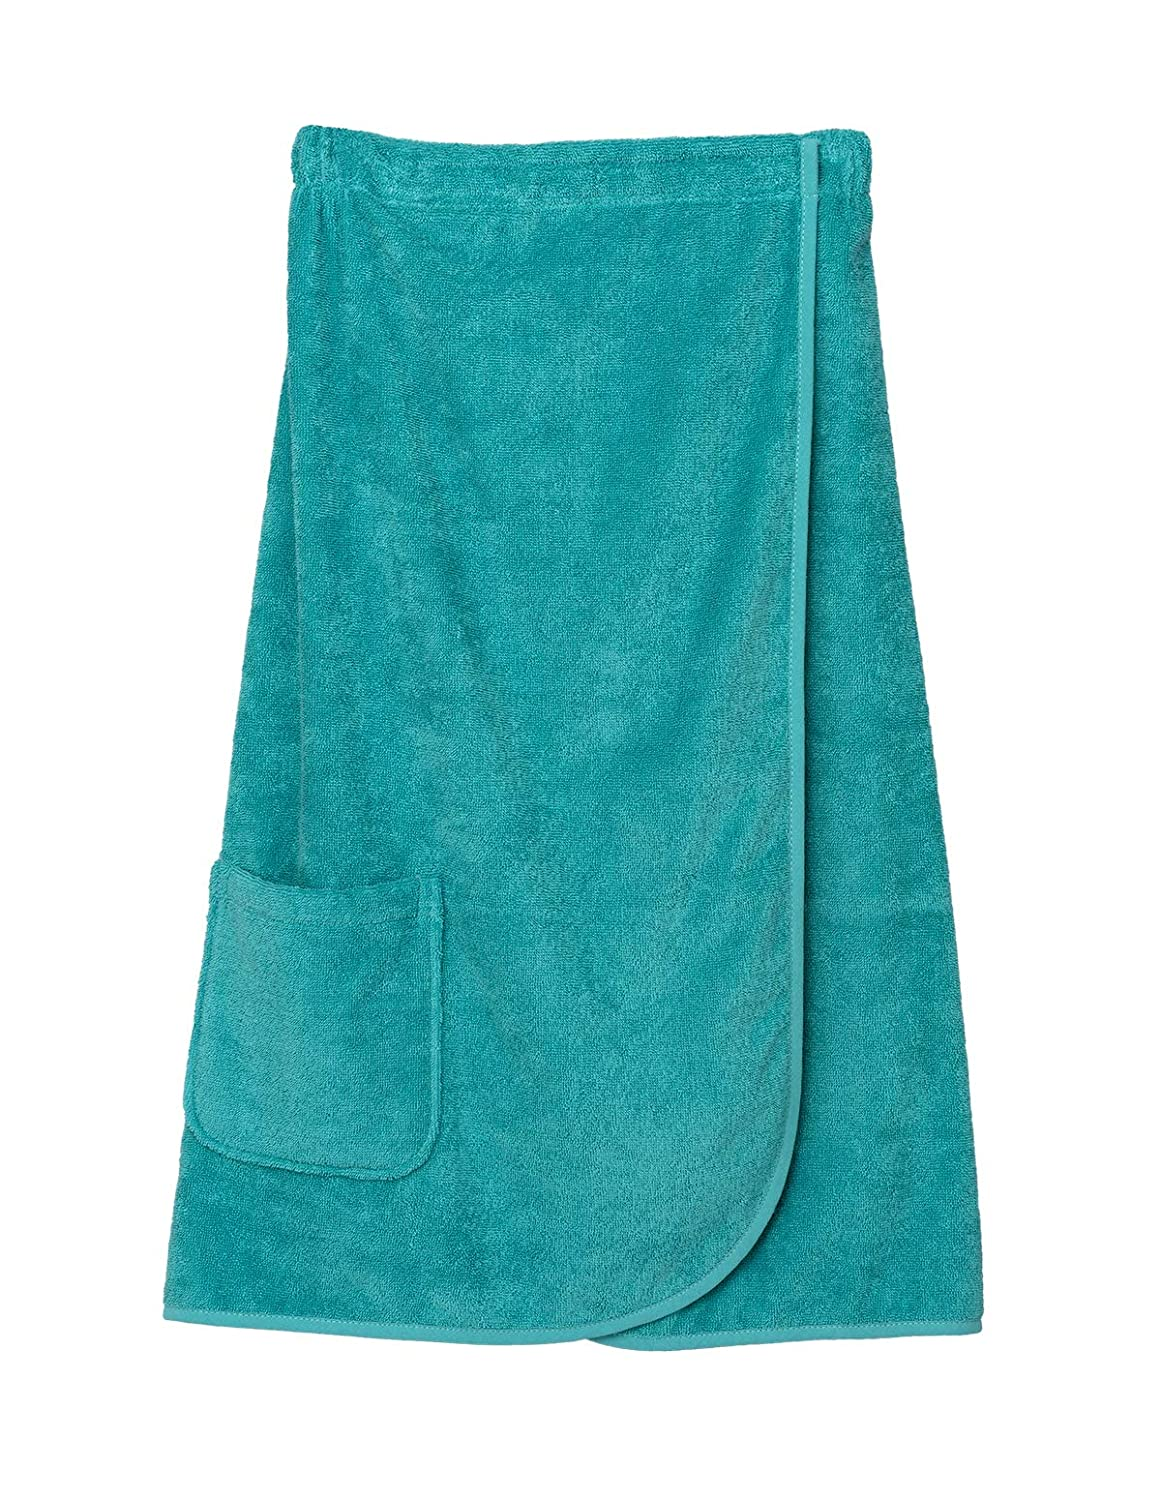 TowelSelections Womens Cotton Terry Spa Bath Towel Wrap Made in Turkey